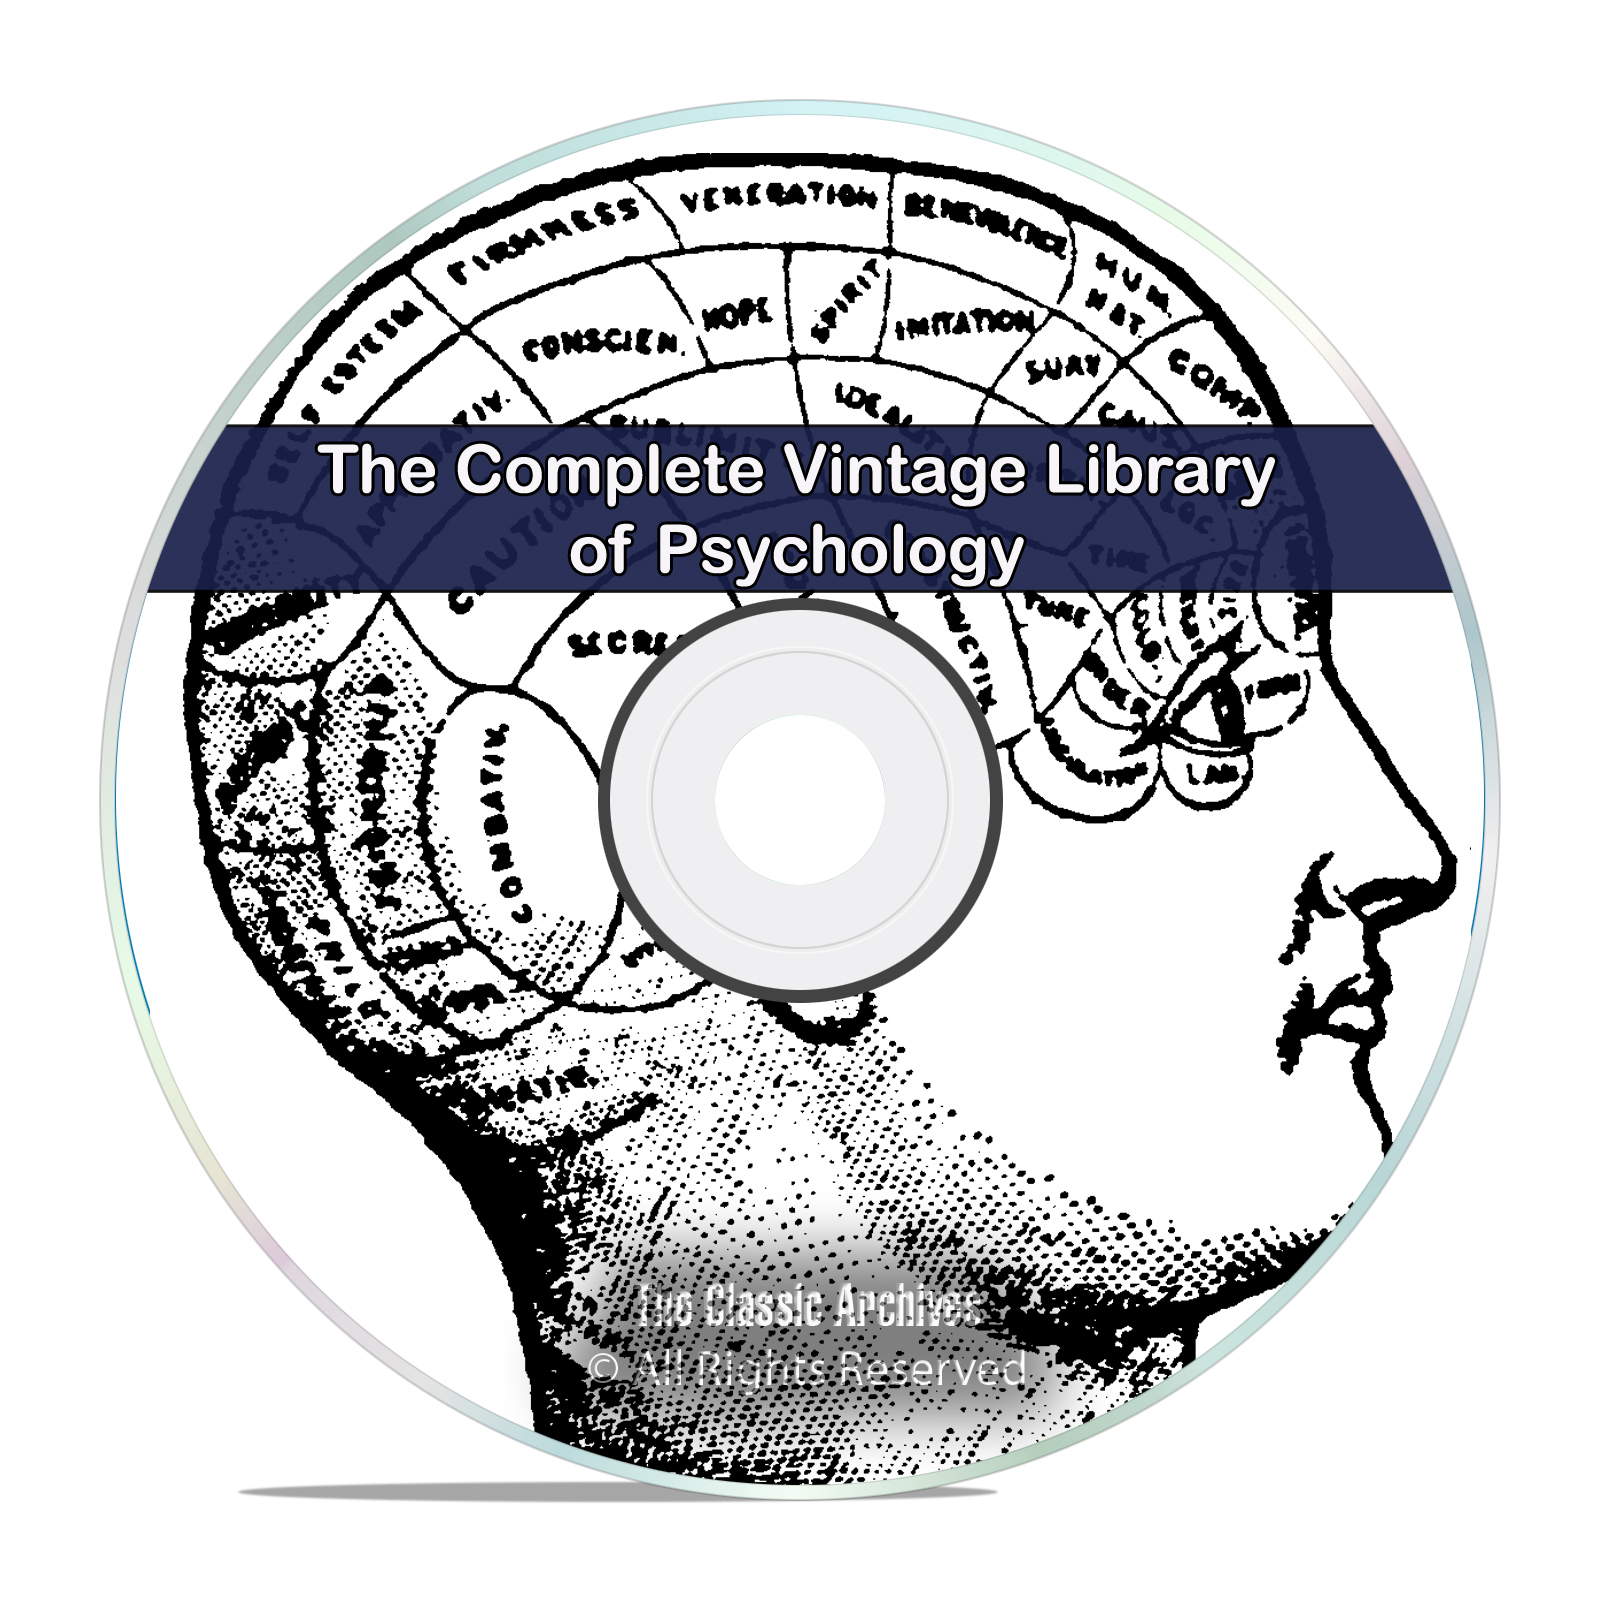 203 Psychology Books, Study Behavior Psychological Psychoanalysis Freud DVD